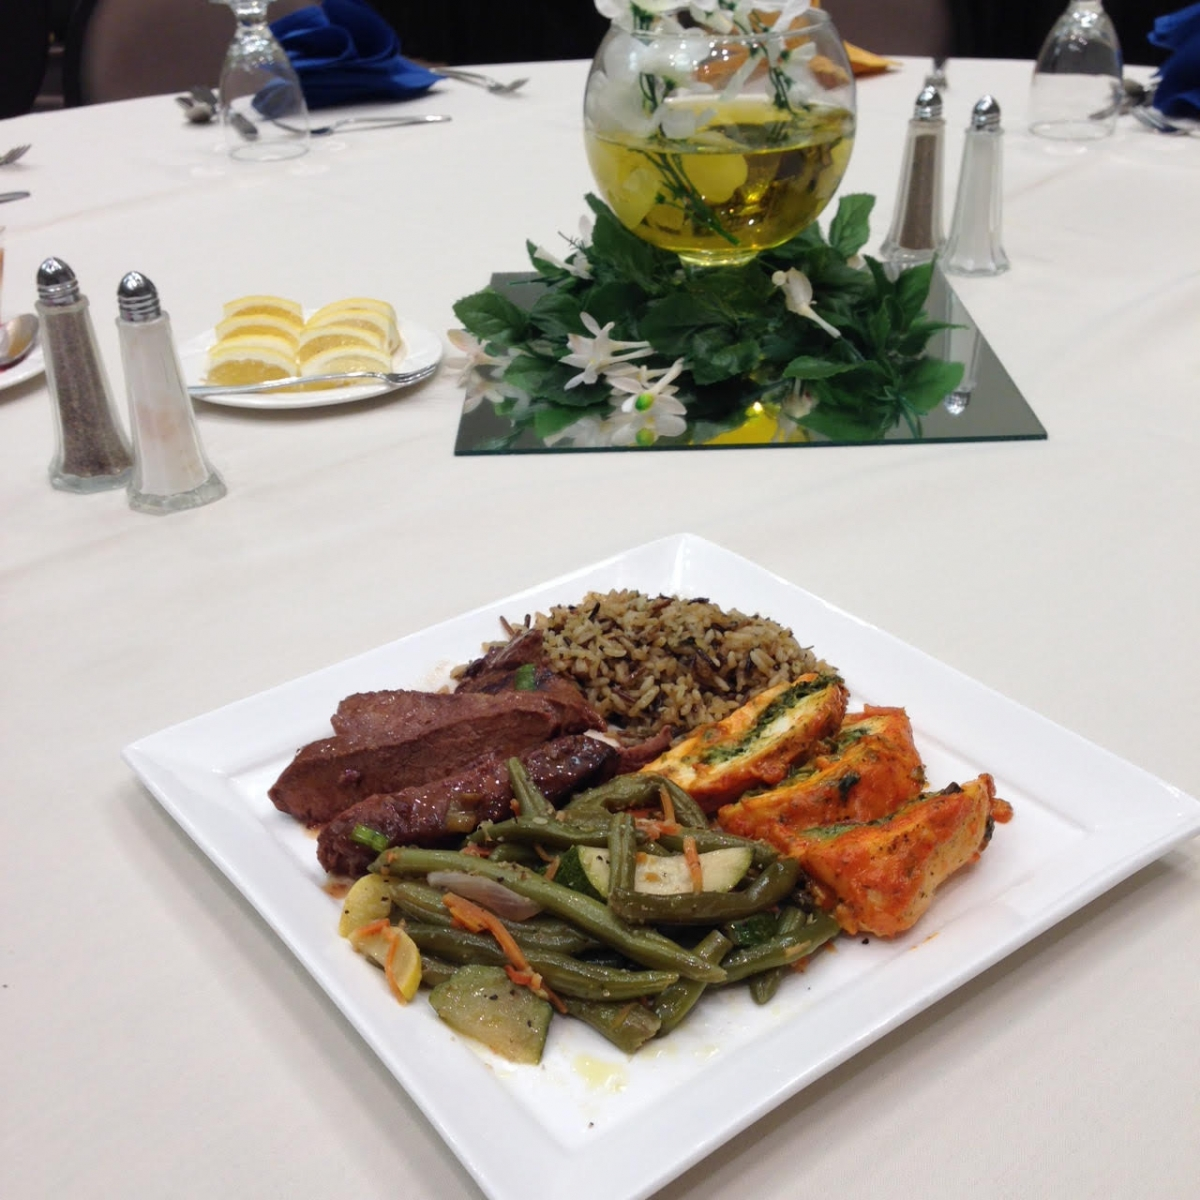 Sliced Sirloin and Chic Florentine at Table Setting  - Chesapeake Conference Center